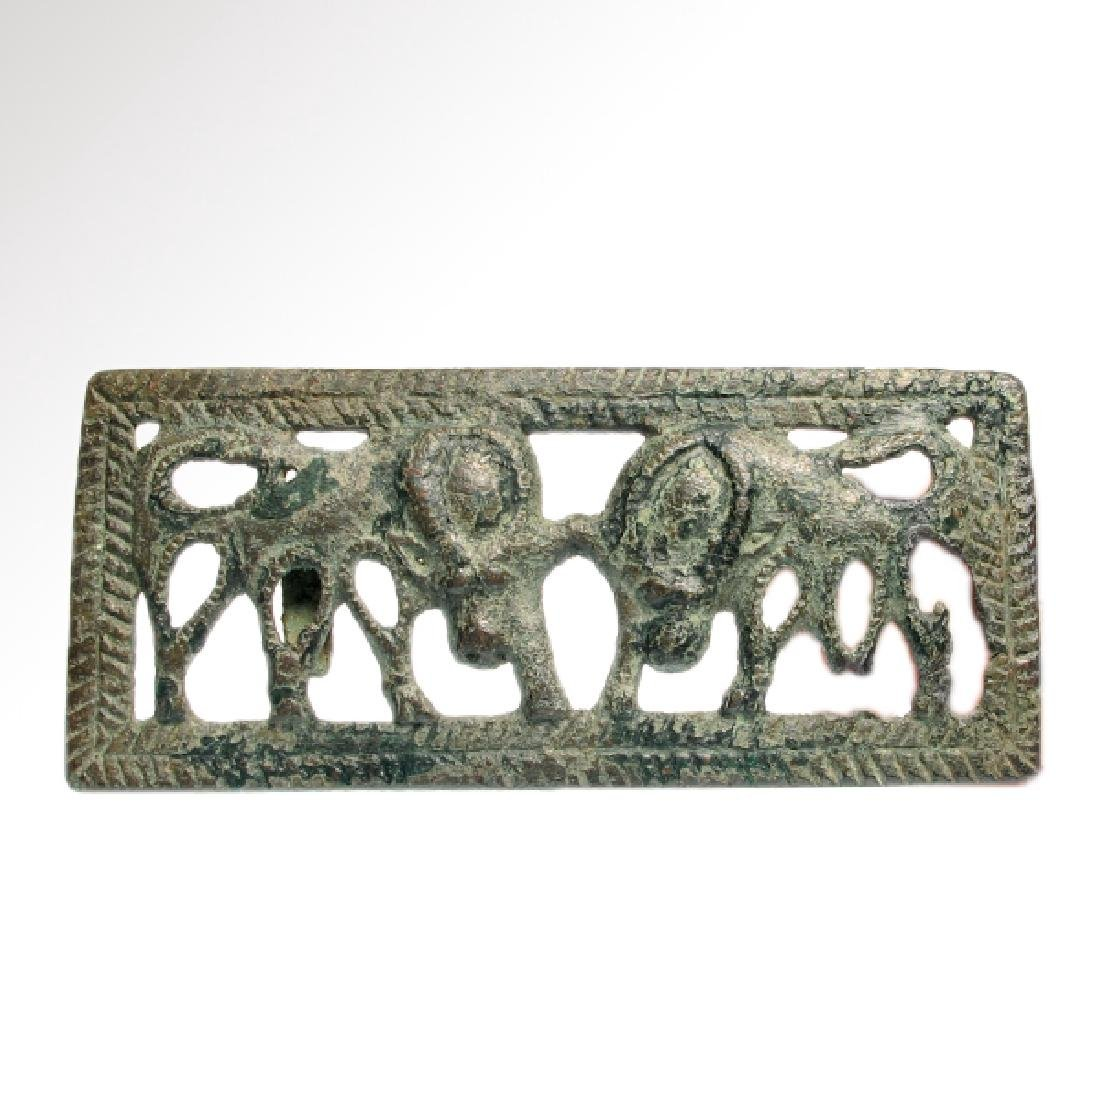 Ordos Open-Work Plaque with Grazing Bulls, c. 500 B.C.